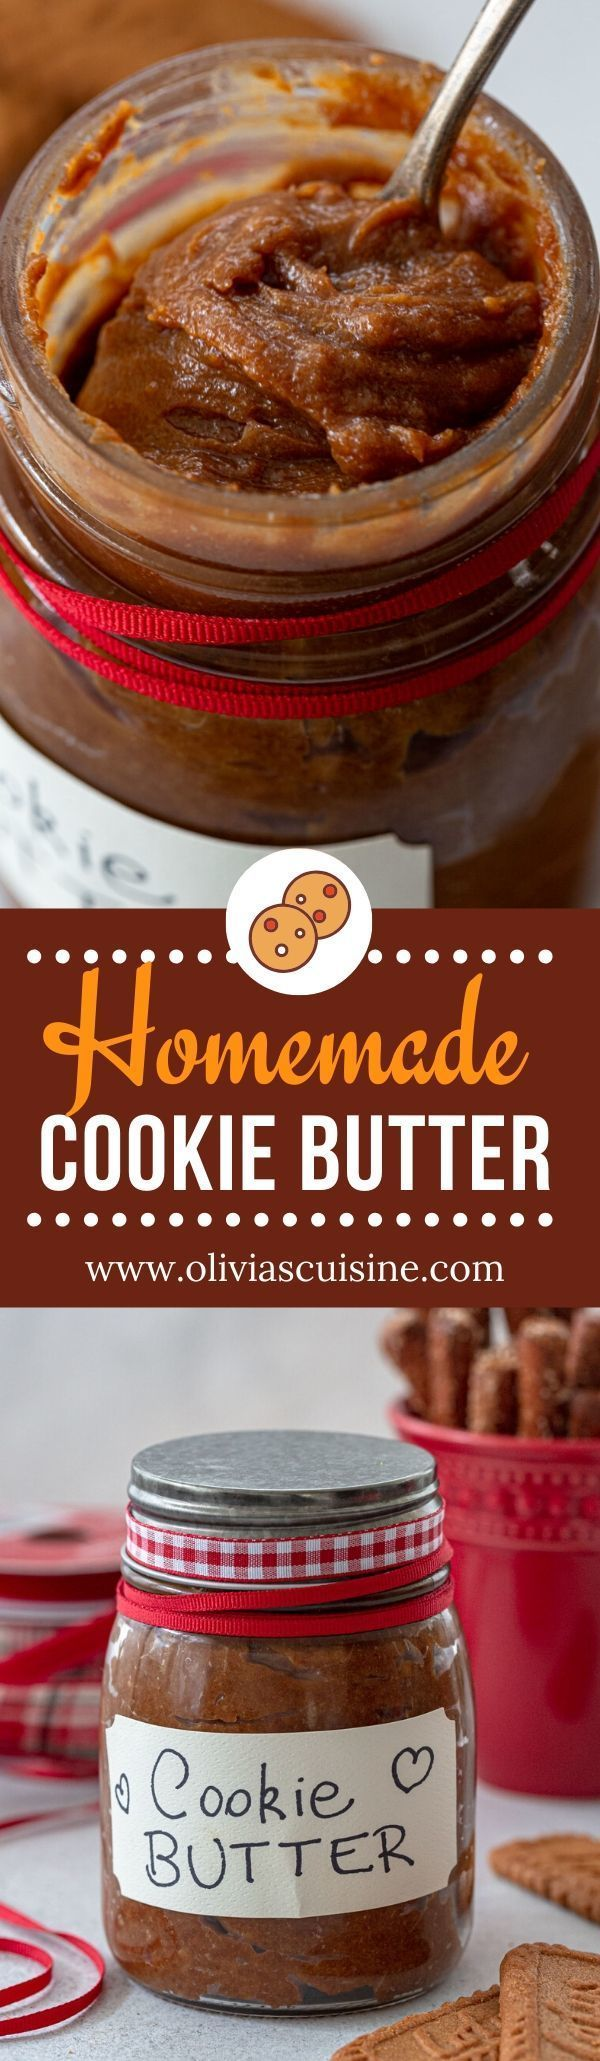 Homemade Cookie Butter Recipe | www.oliviascuisine.com | If you're as obsessed as I am with the store bought version, this cookie butter recipe is for you. Thick and creamy, you won't be able to stop eating it by the spoonful! (Follow @oliviascuisine for more delicious recipes.) #cookiebutter #cookiespread #cookies #speculoos #biscoff